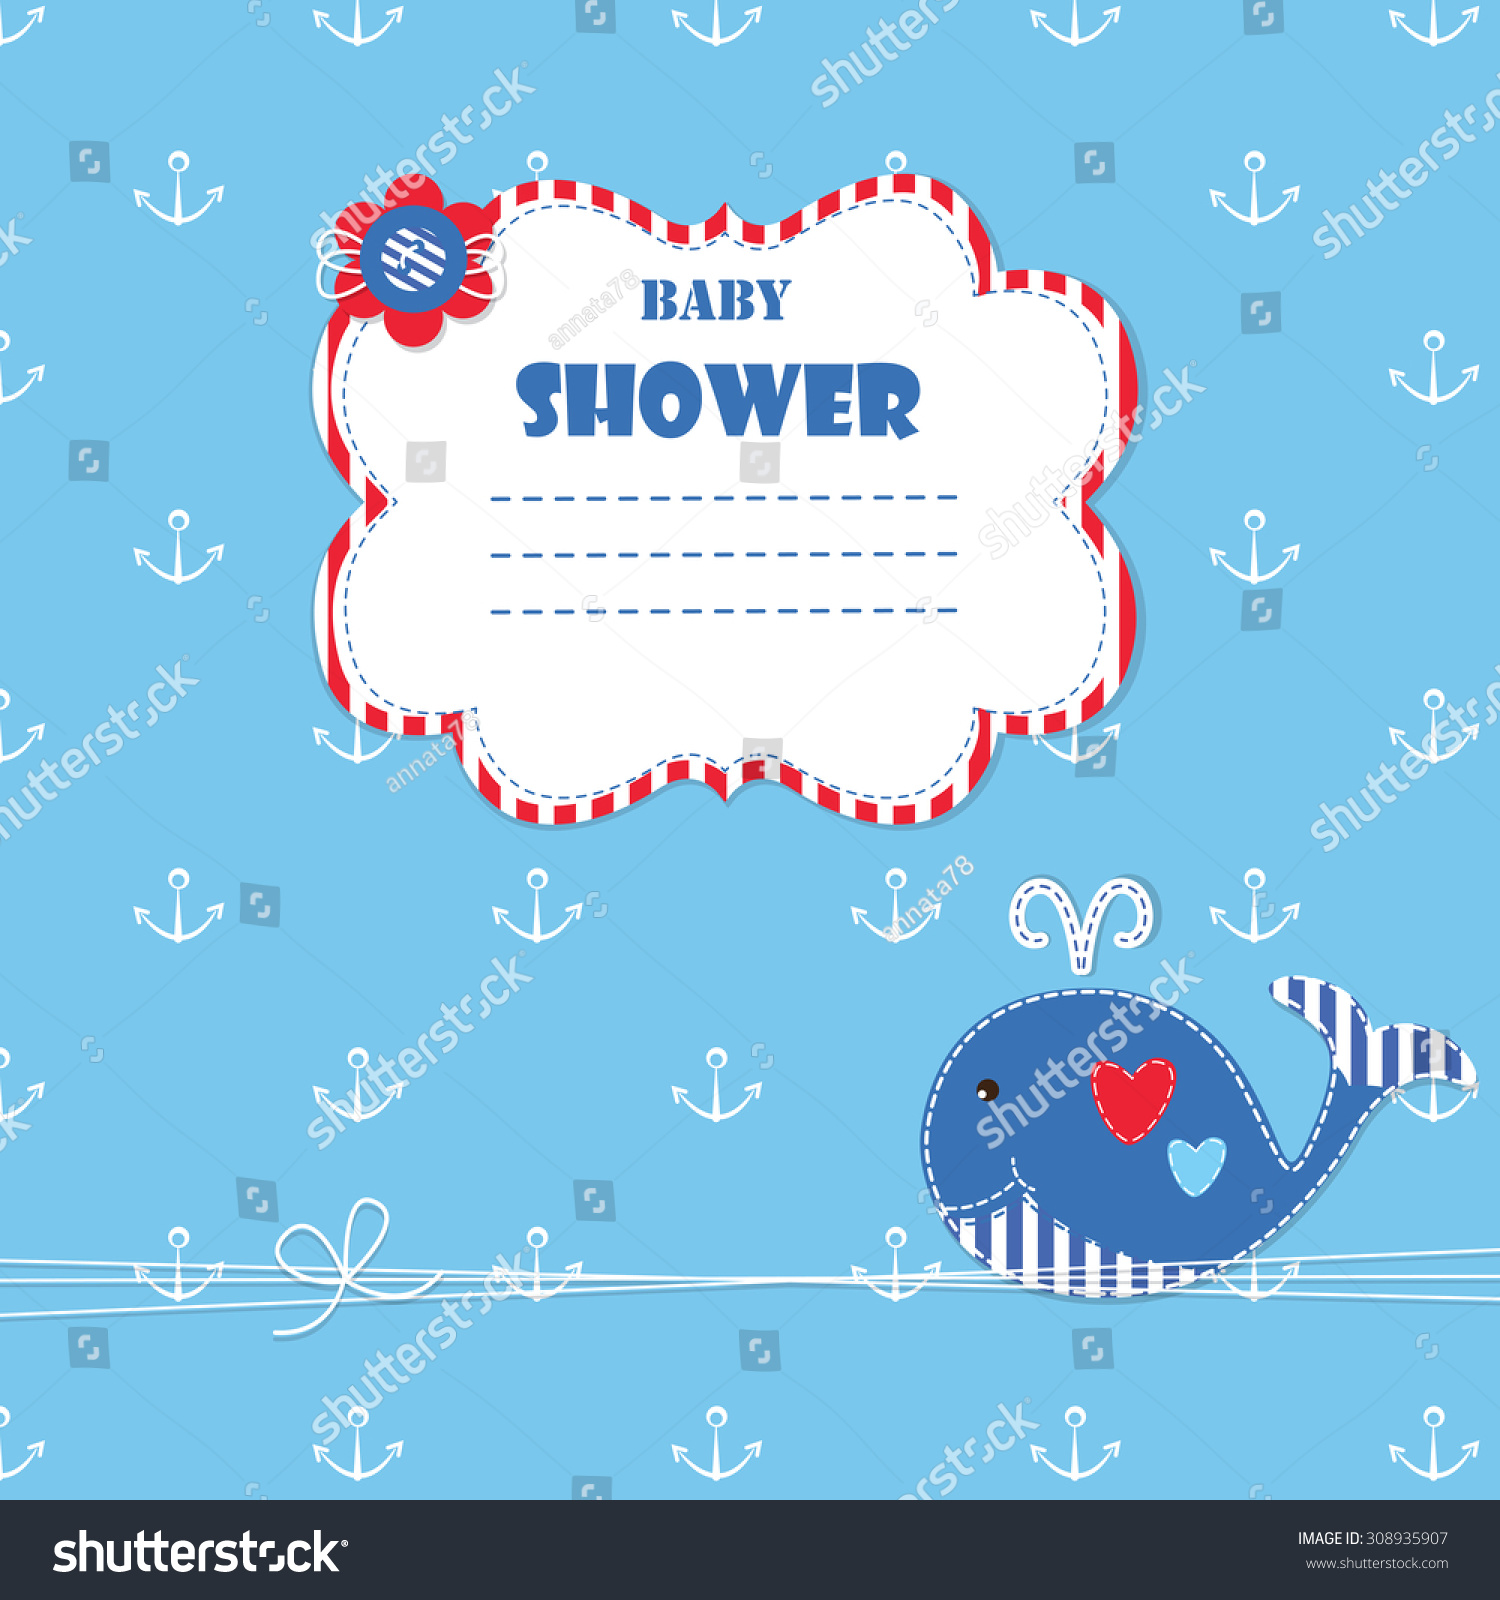 Baby Background Cute Whale Baby Shower Stock Vector HD (Royalty Free ...